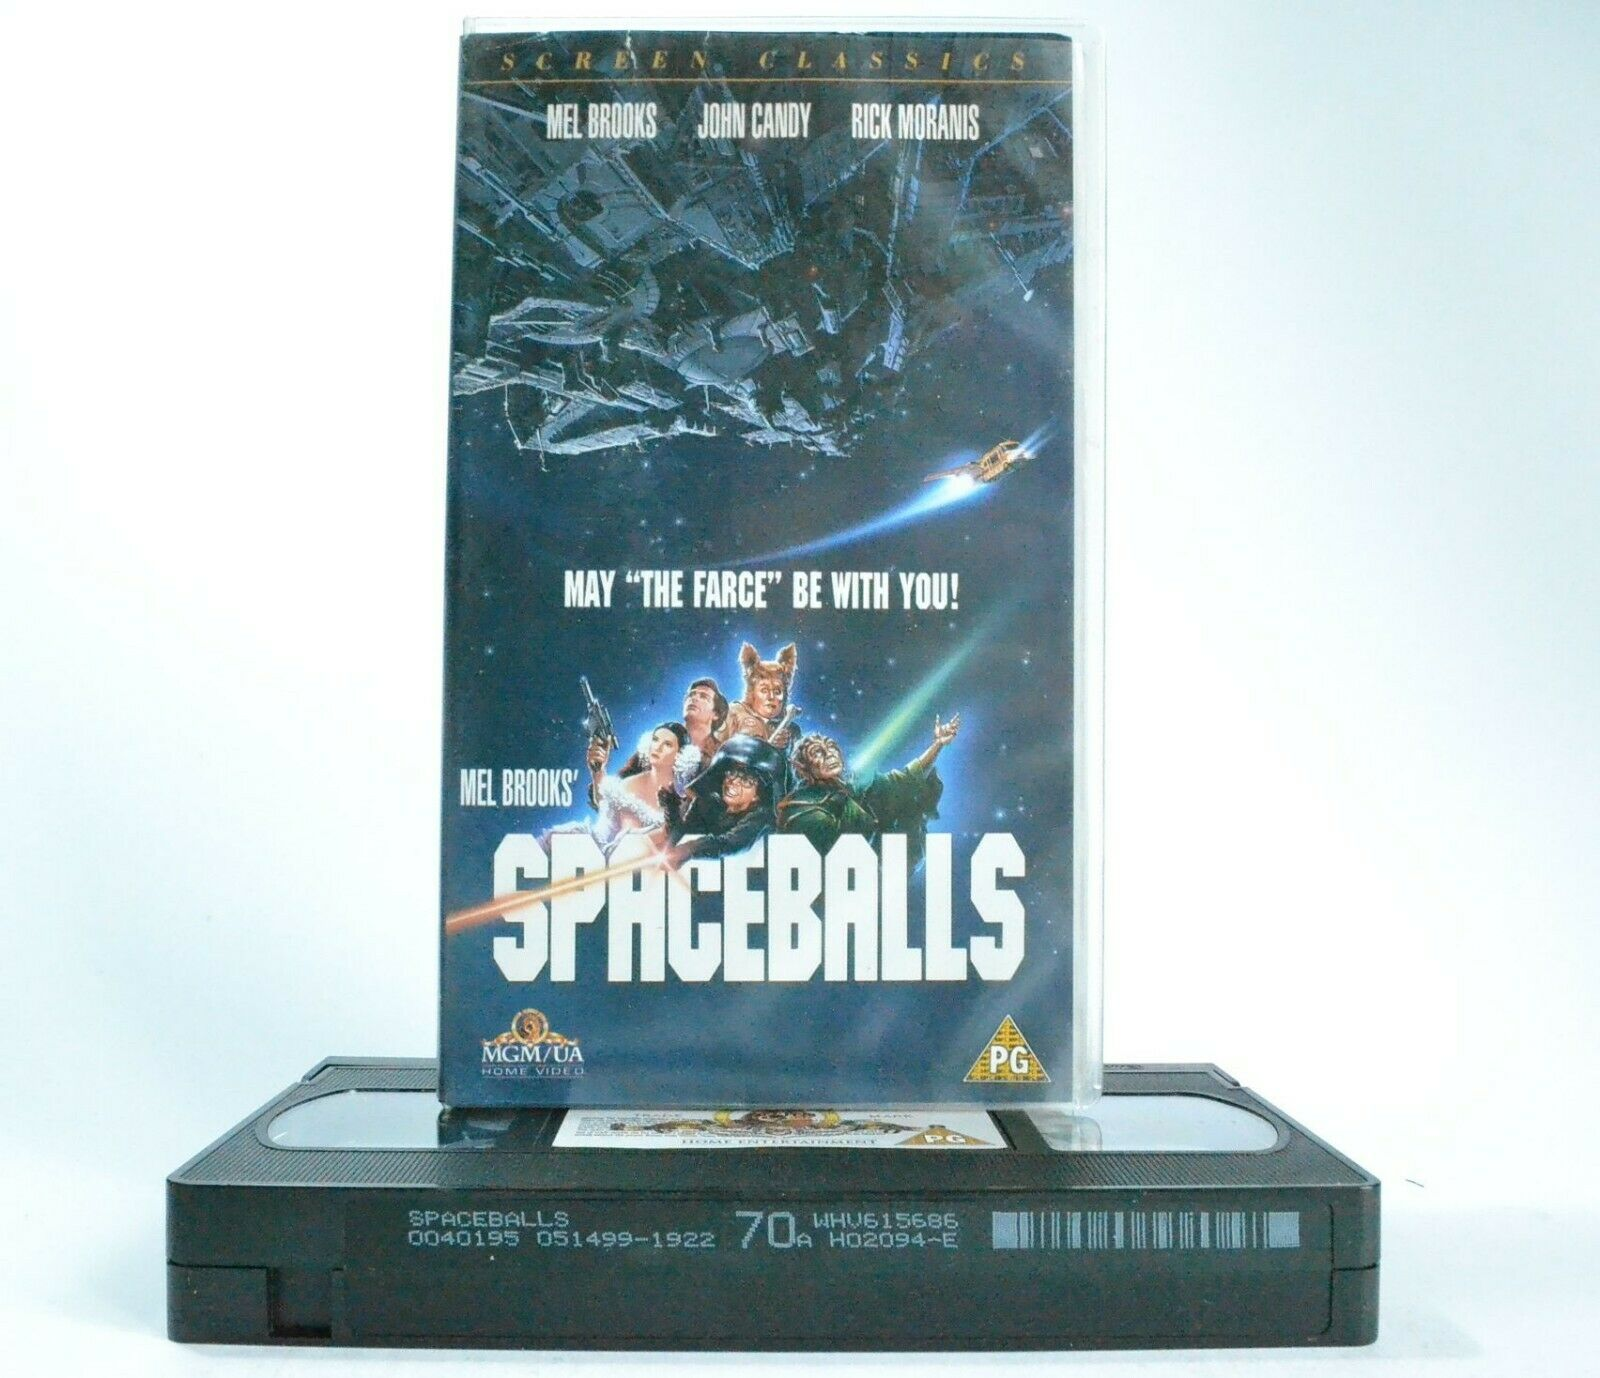 Spaceballs: Film By M.Brooks - MGM/UA (1987) - Comedy Classic - J.Candy - VHS